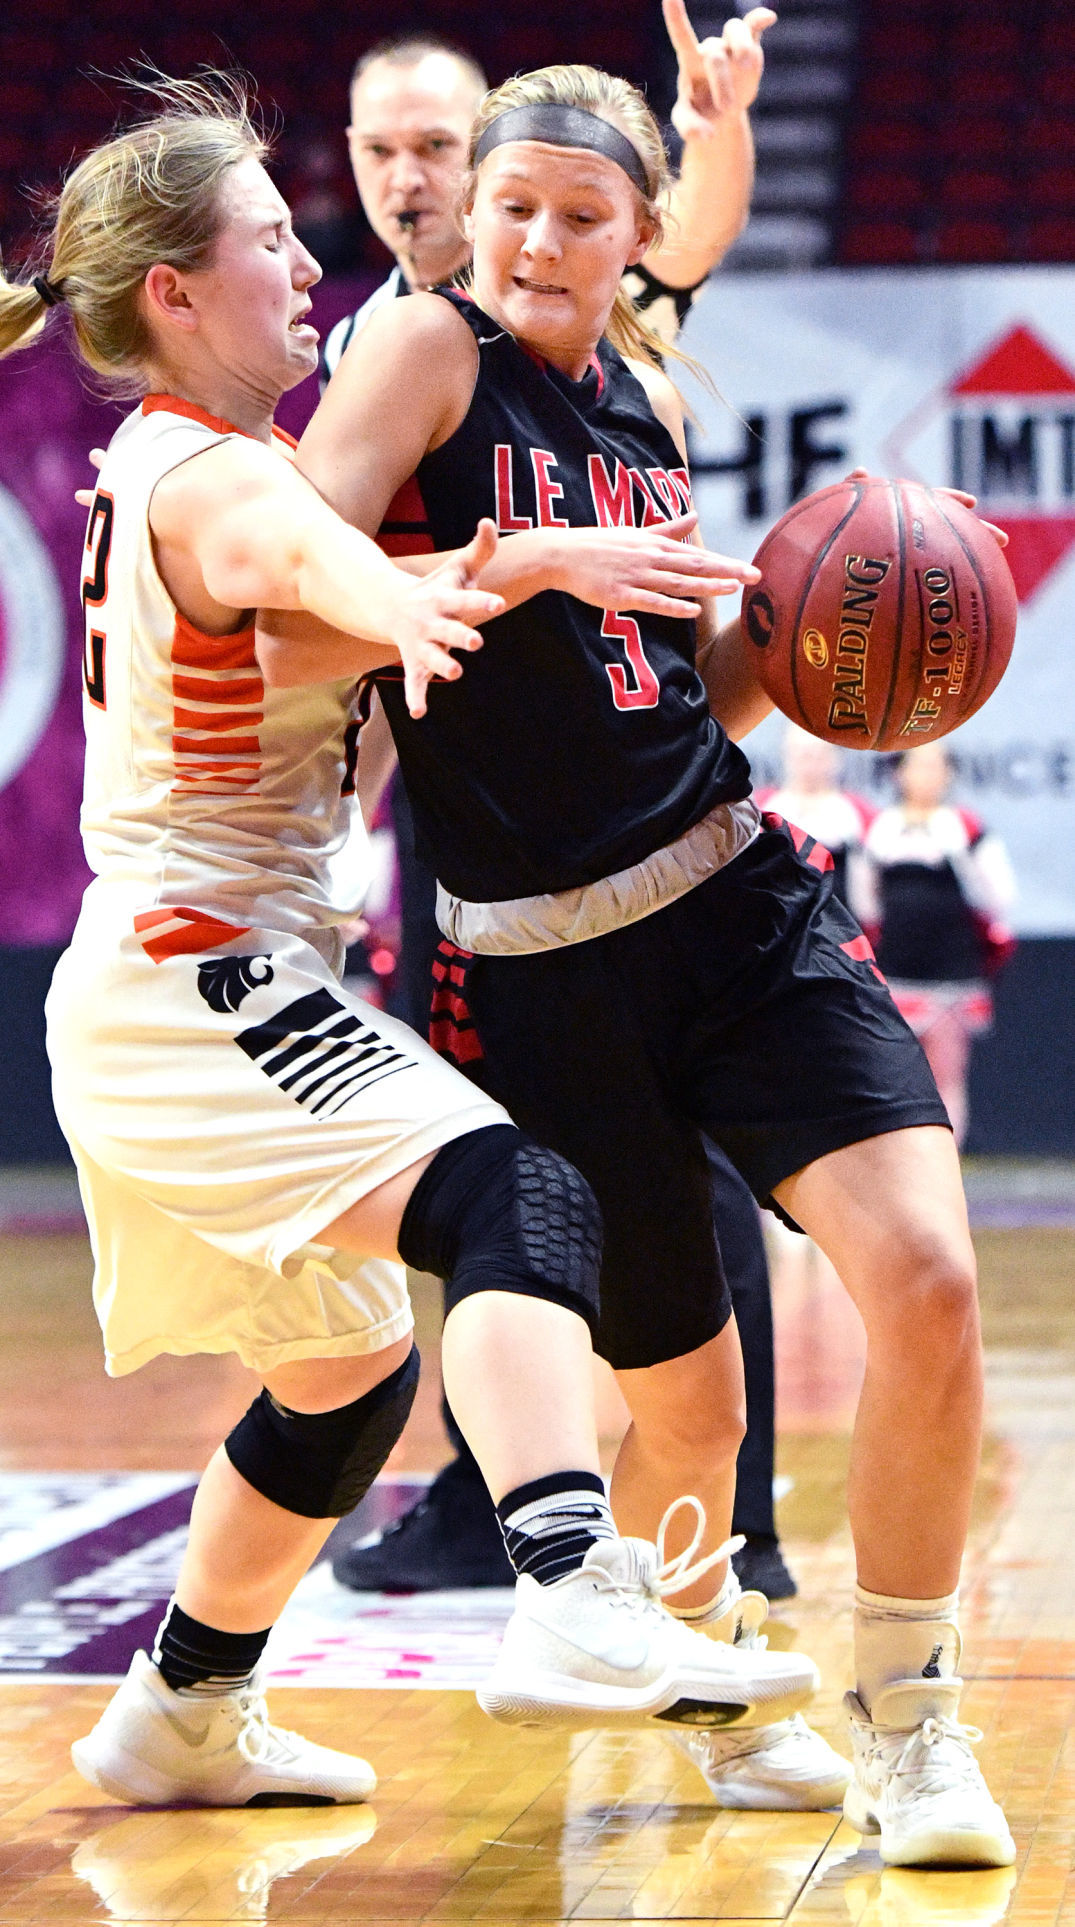 Le Mars vs Grinnell state basketball